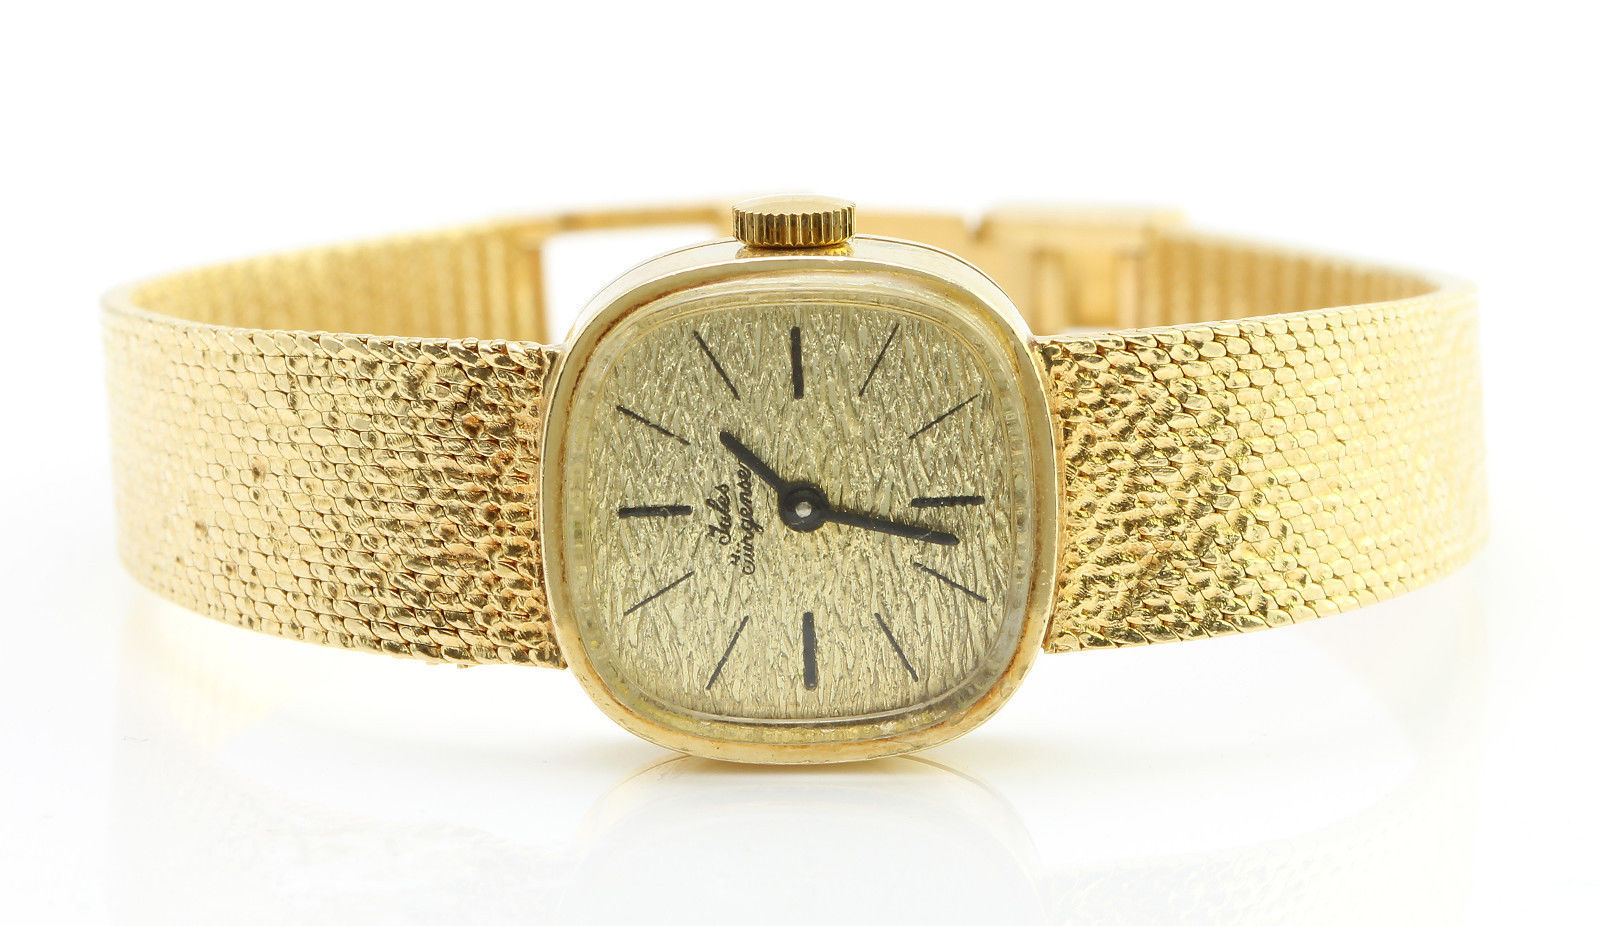 f vintage omega watch gold swisswatchexpo for watches made yellow tiffany ladies